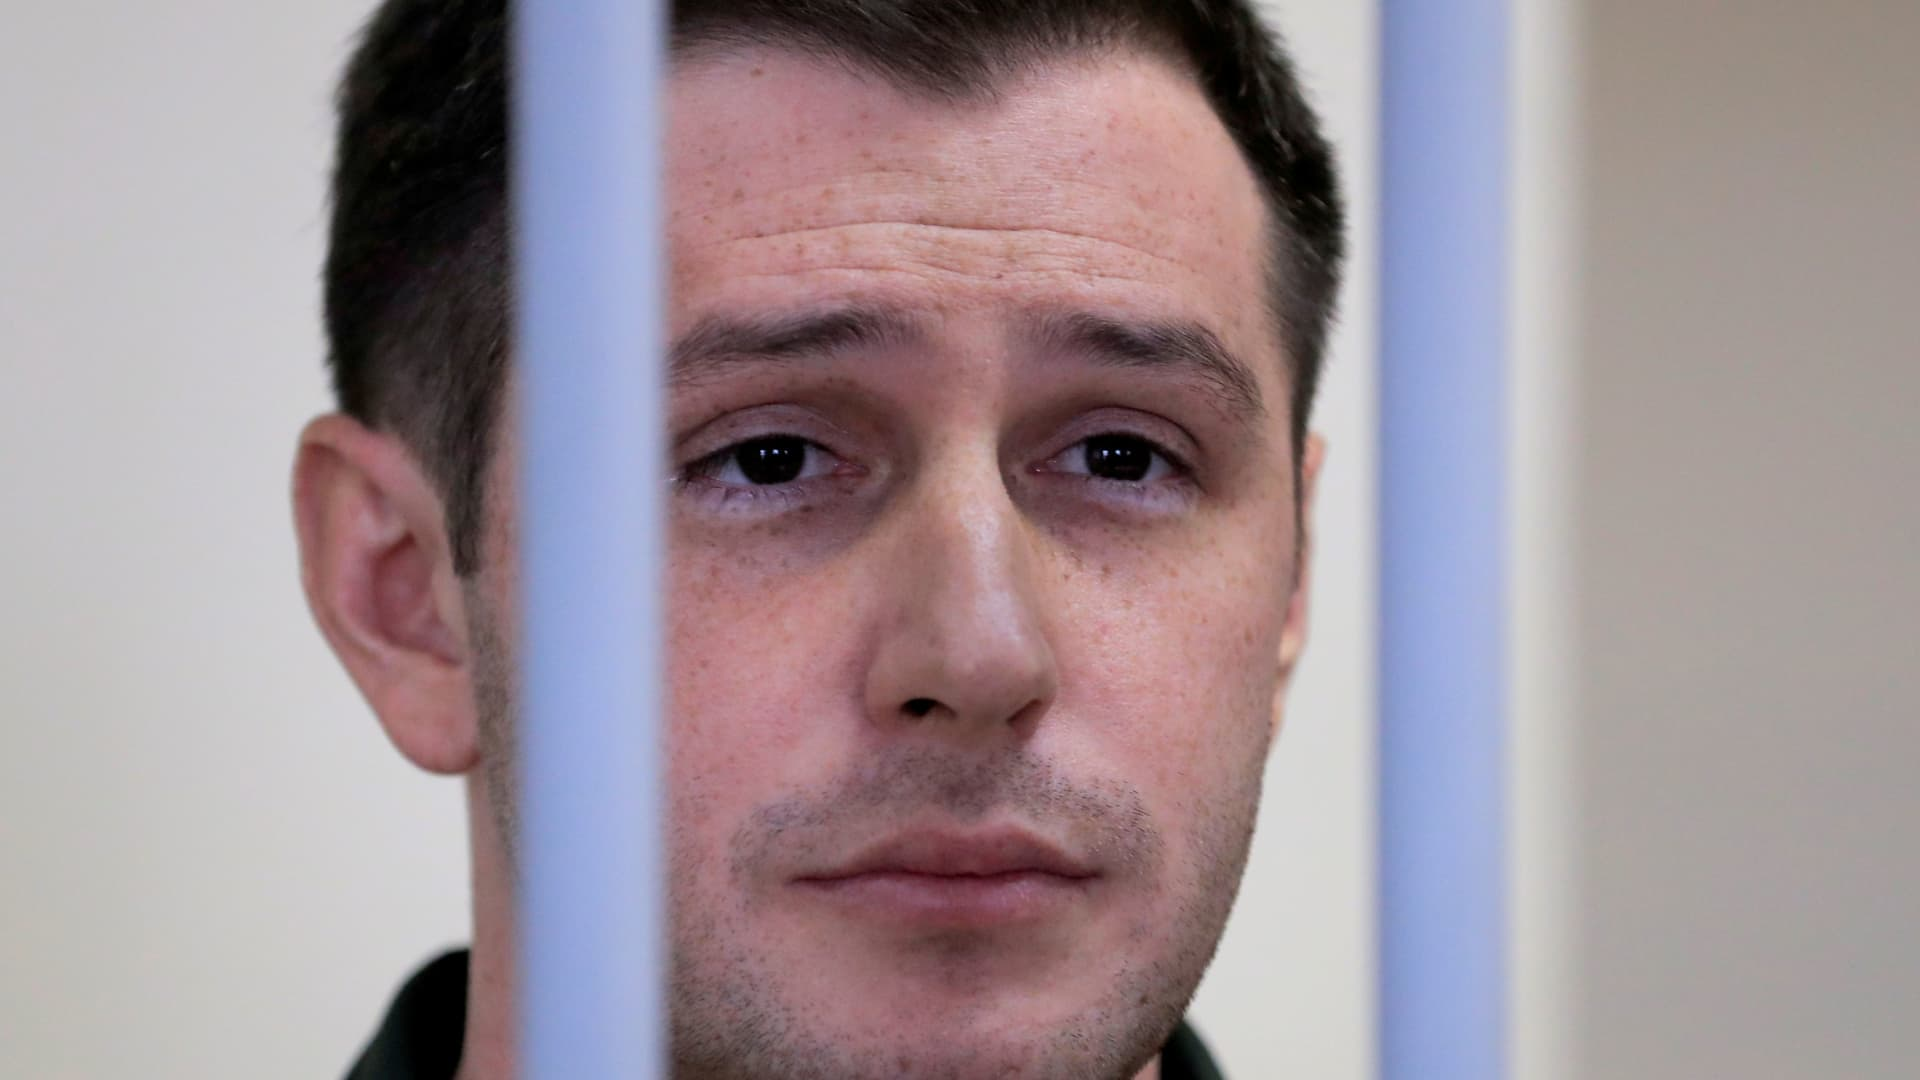 Former U.S. Marine Trevor Reed, who was detained in 2019 and accused of assaulting police officers, stands inside a defendants' cage during a court hearing in Moscow, Russia March 11, 2020.